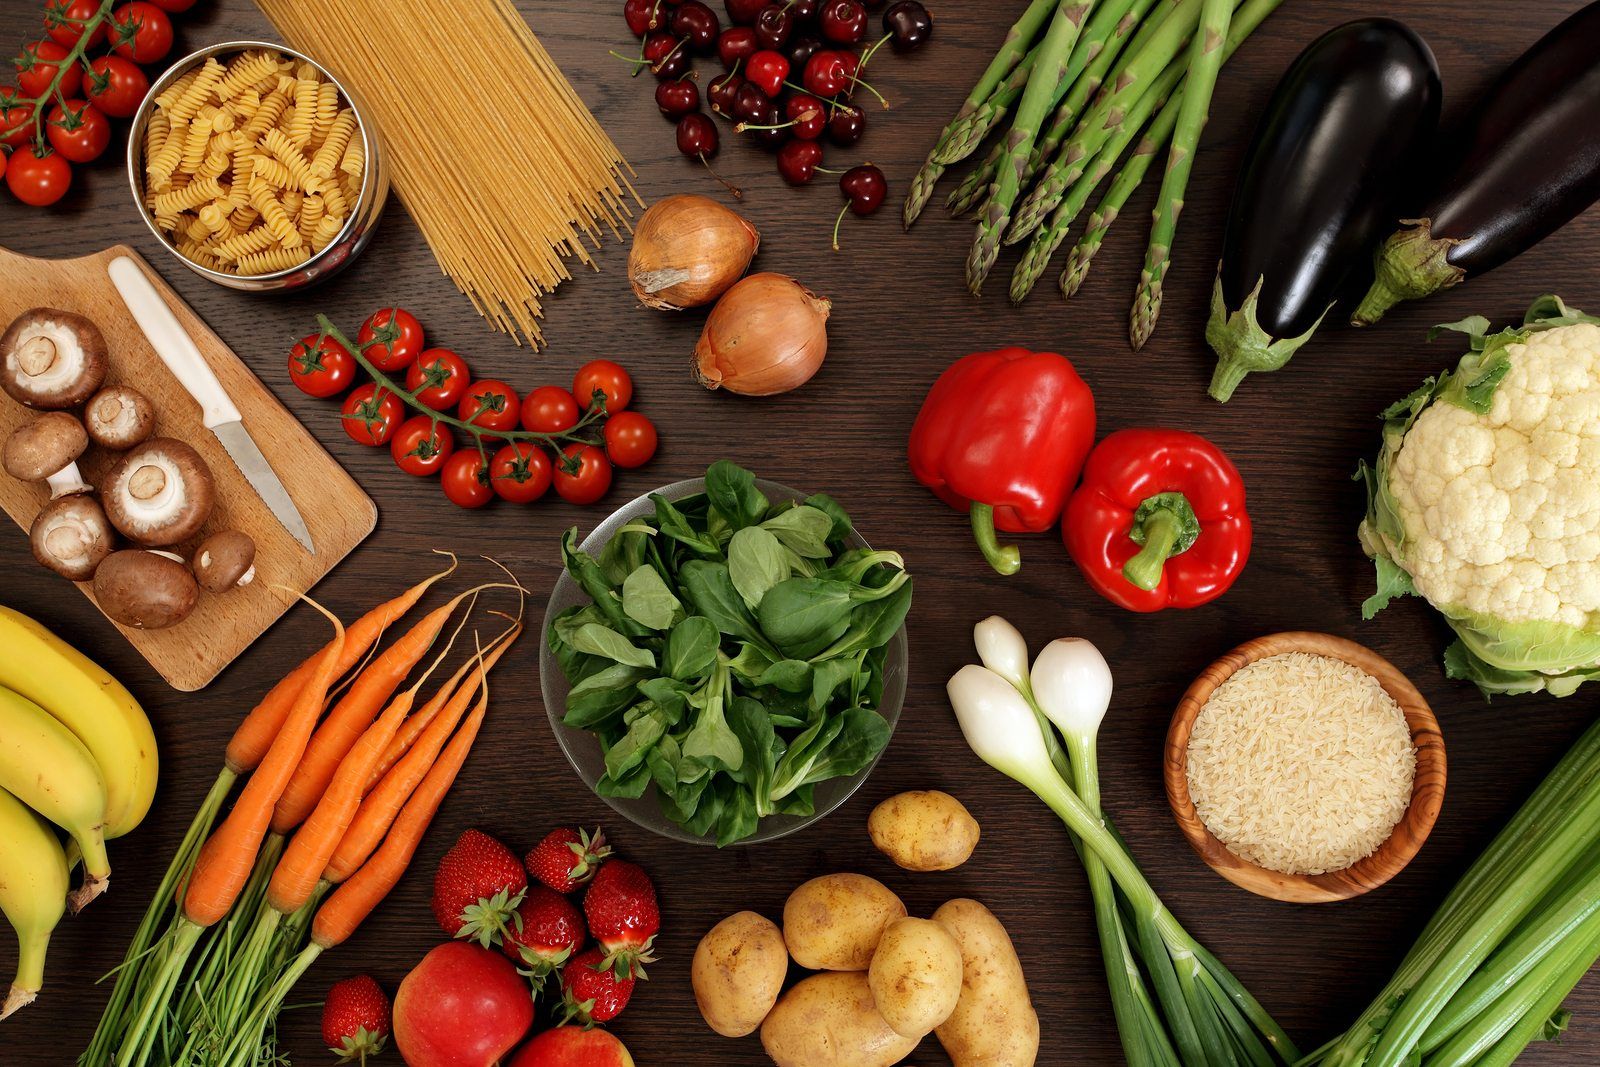 Photo of a table top full of fresh vegetables fruit and other healthy foods.